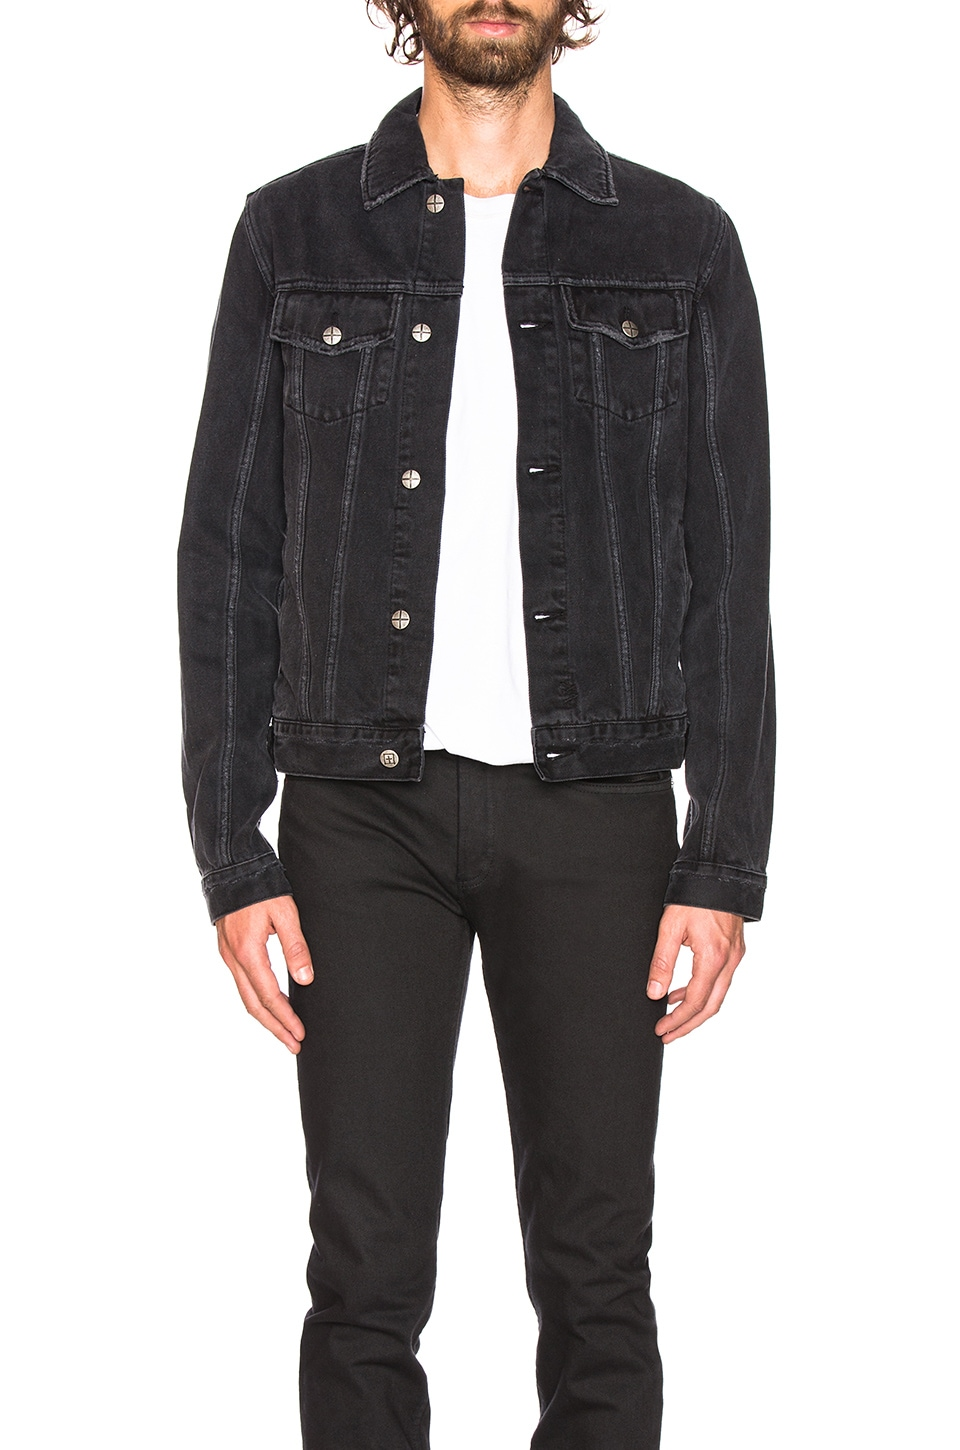 Ksubi Classic Jacket in Sketchy Black